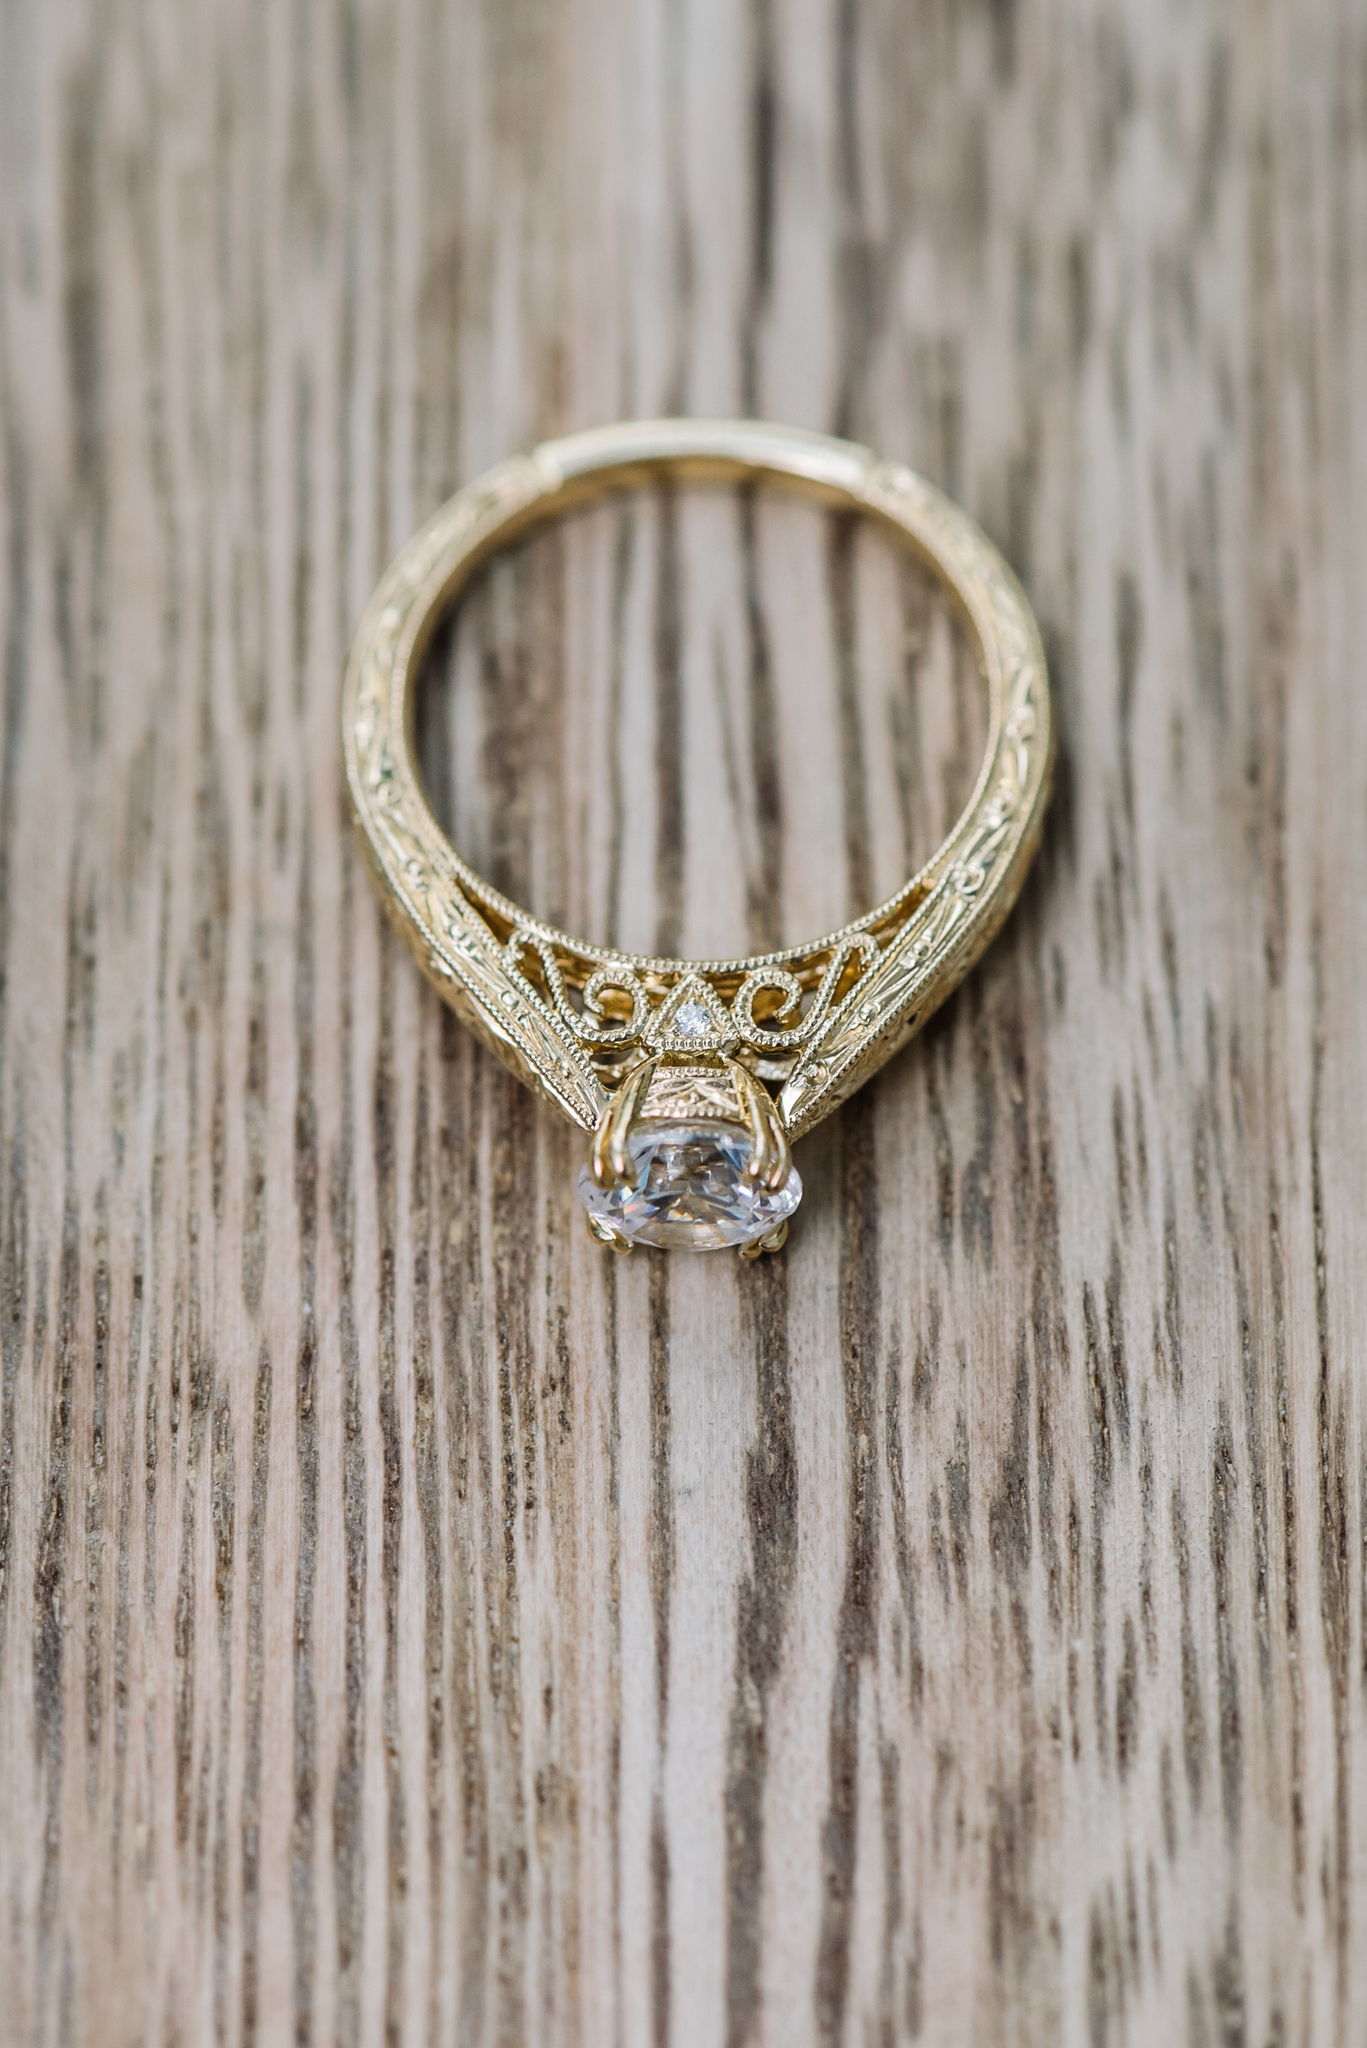 Yellow gold engagement ring by Kirk Kara with hand engraving and a single round diamond on a wood grain background